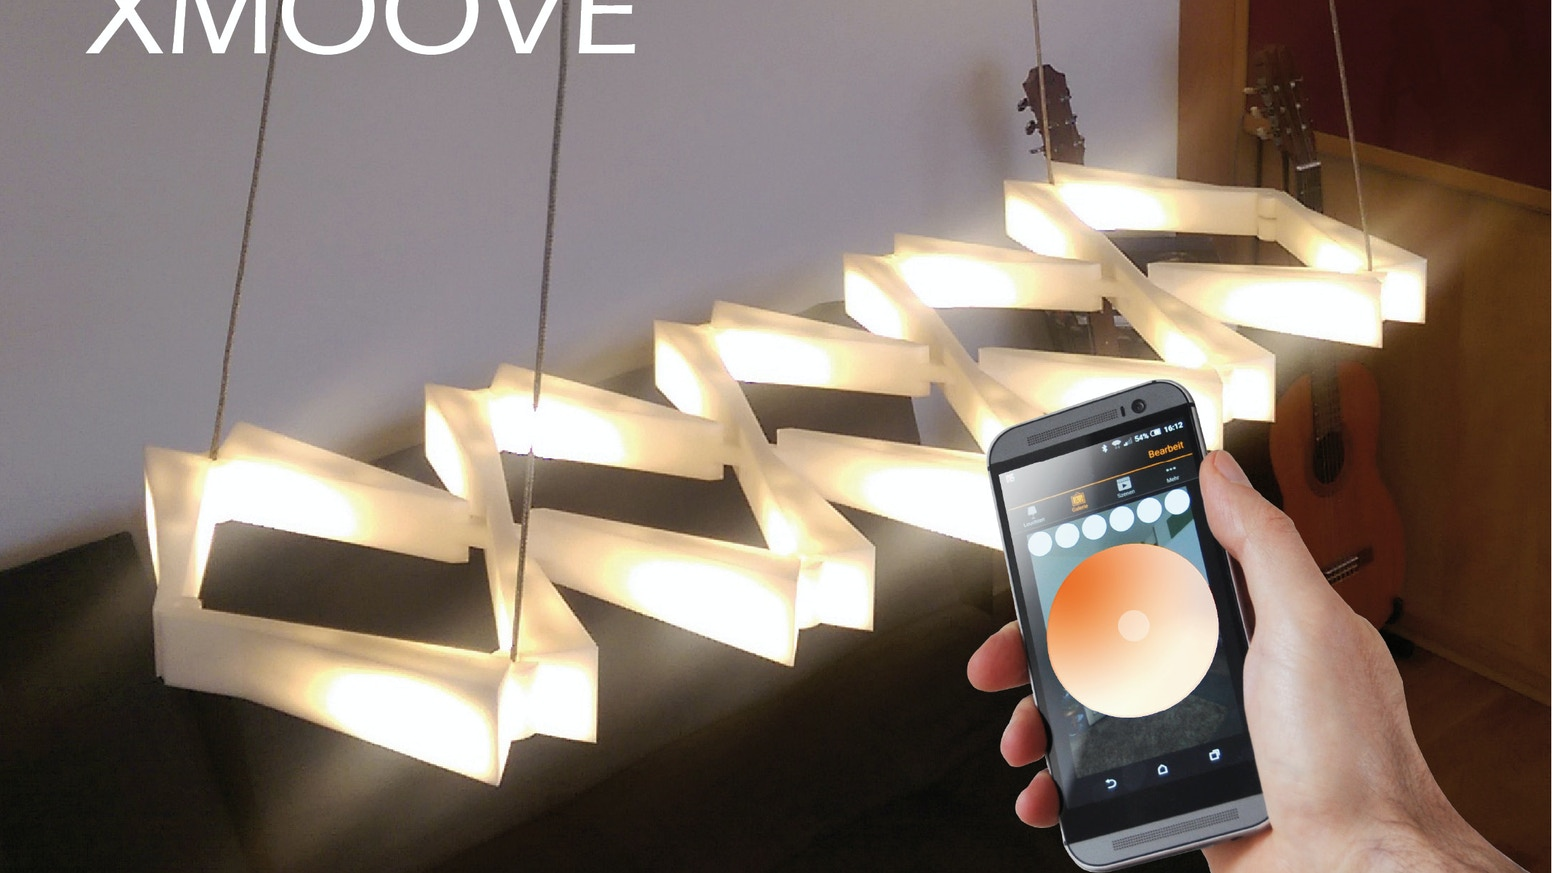 The best and most flexible light to illuminate your table! Thank you for supporting XMOOVE!!!www.xmoove.de